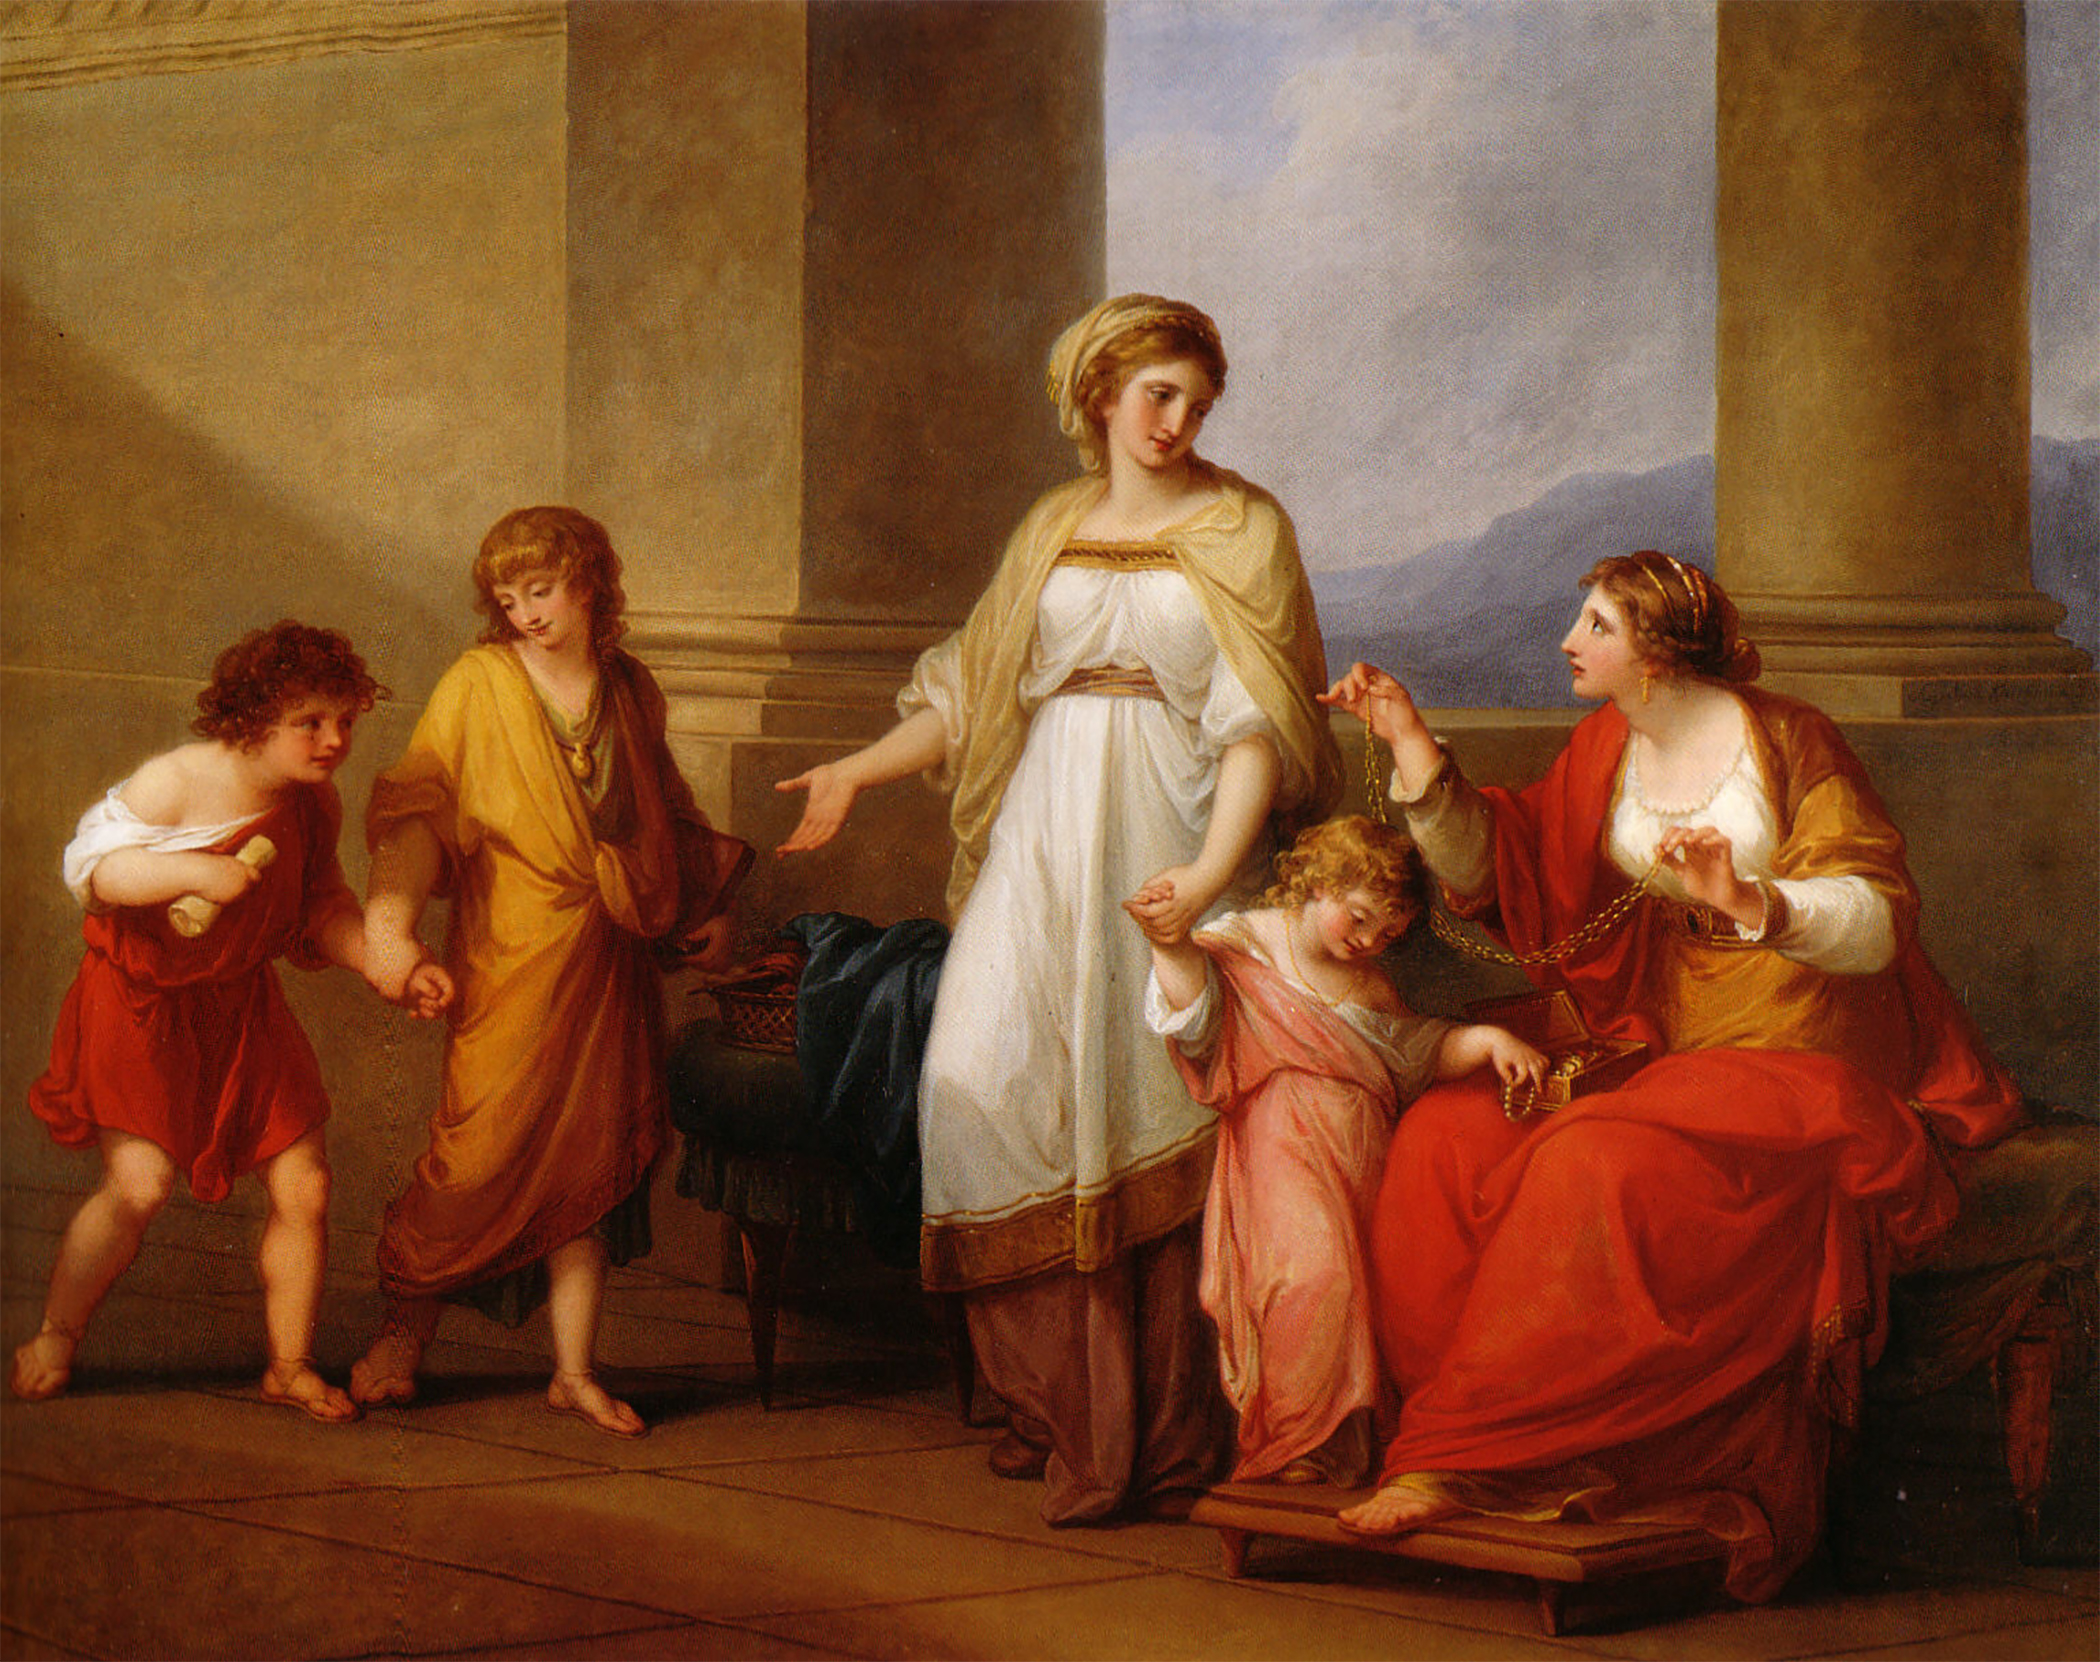 Angelica Kauffmann 1785 Bowles Cornelia, Mother of Gracchi, Pointing to Children as Her Treasures 101 x 127 cm, Richmond, Virginia Museum of Fine Arts .